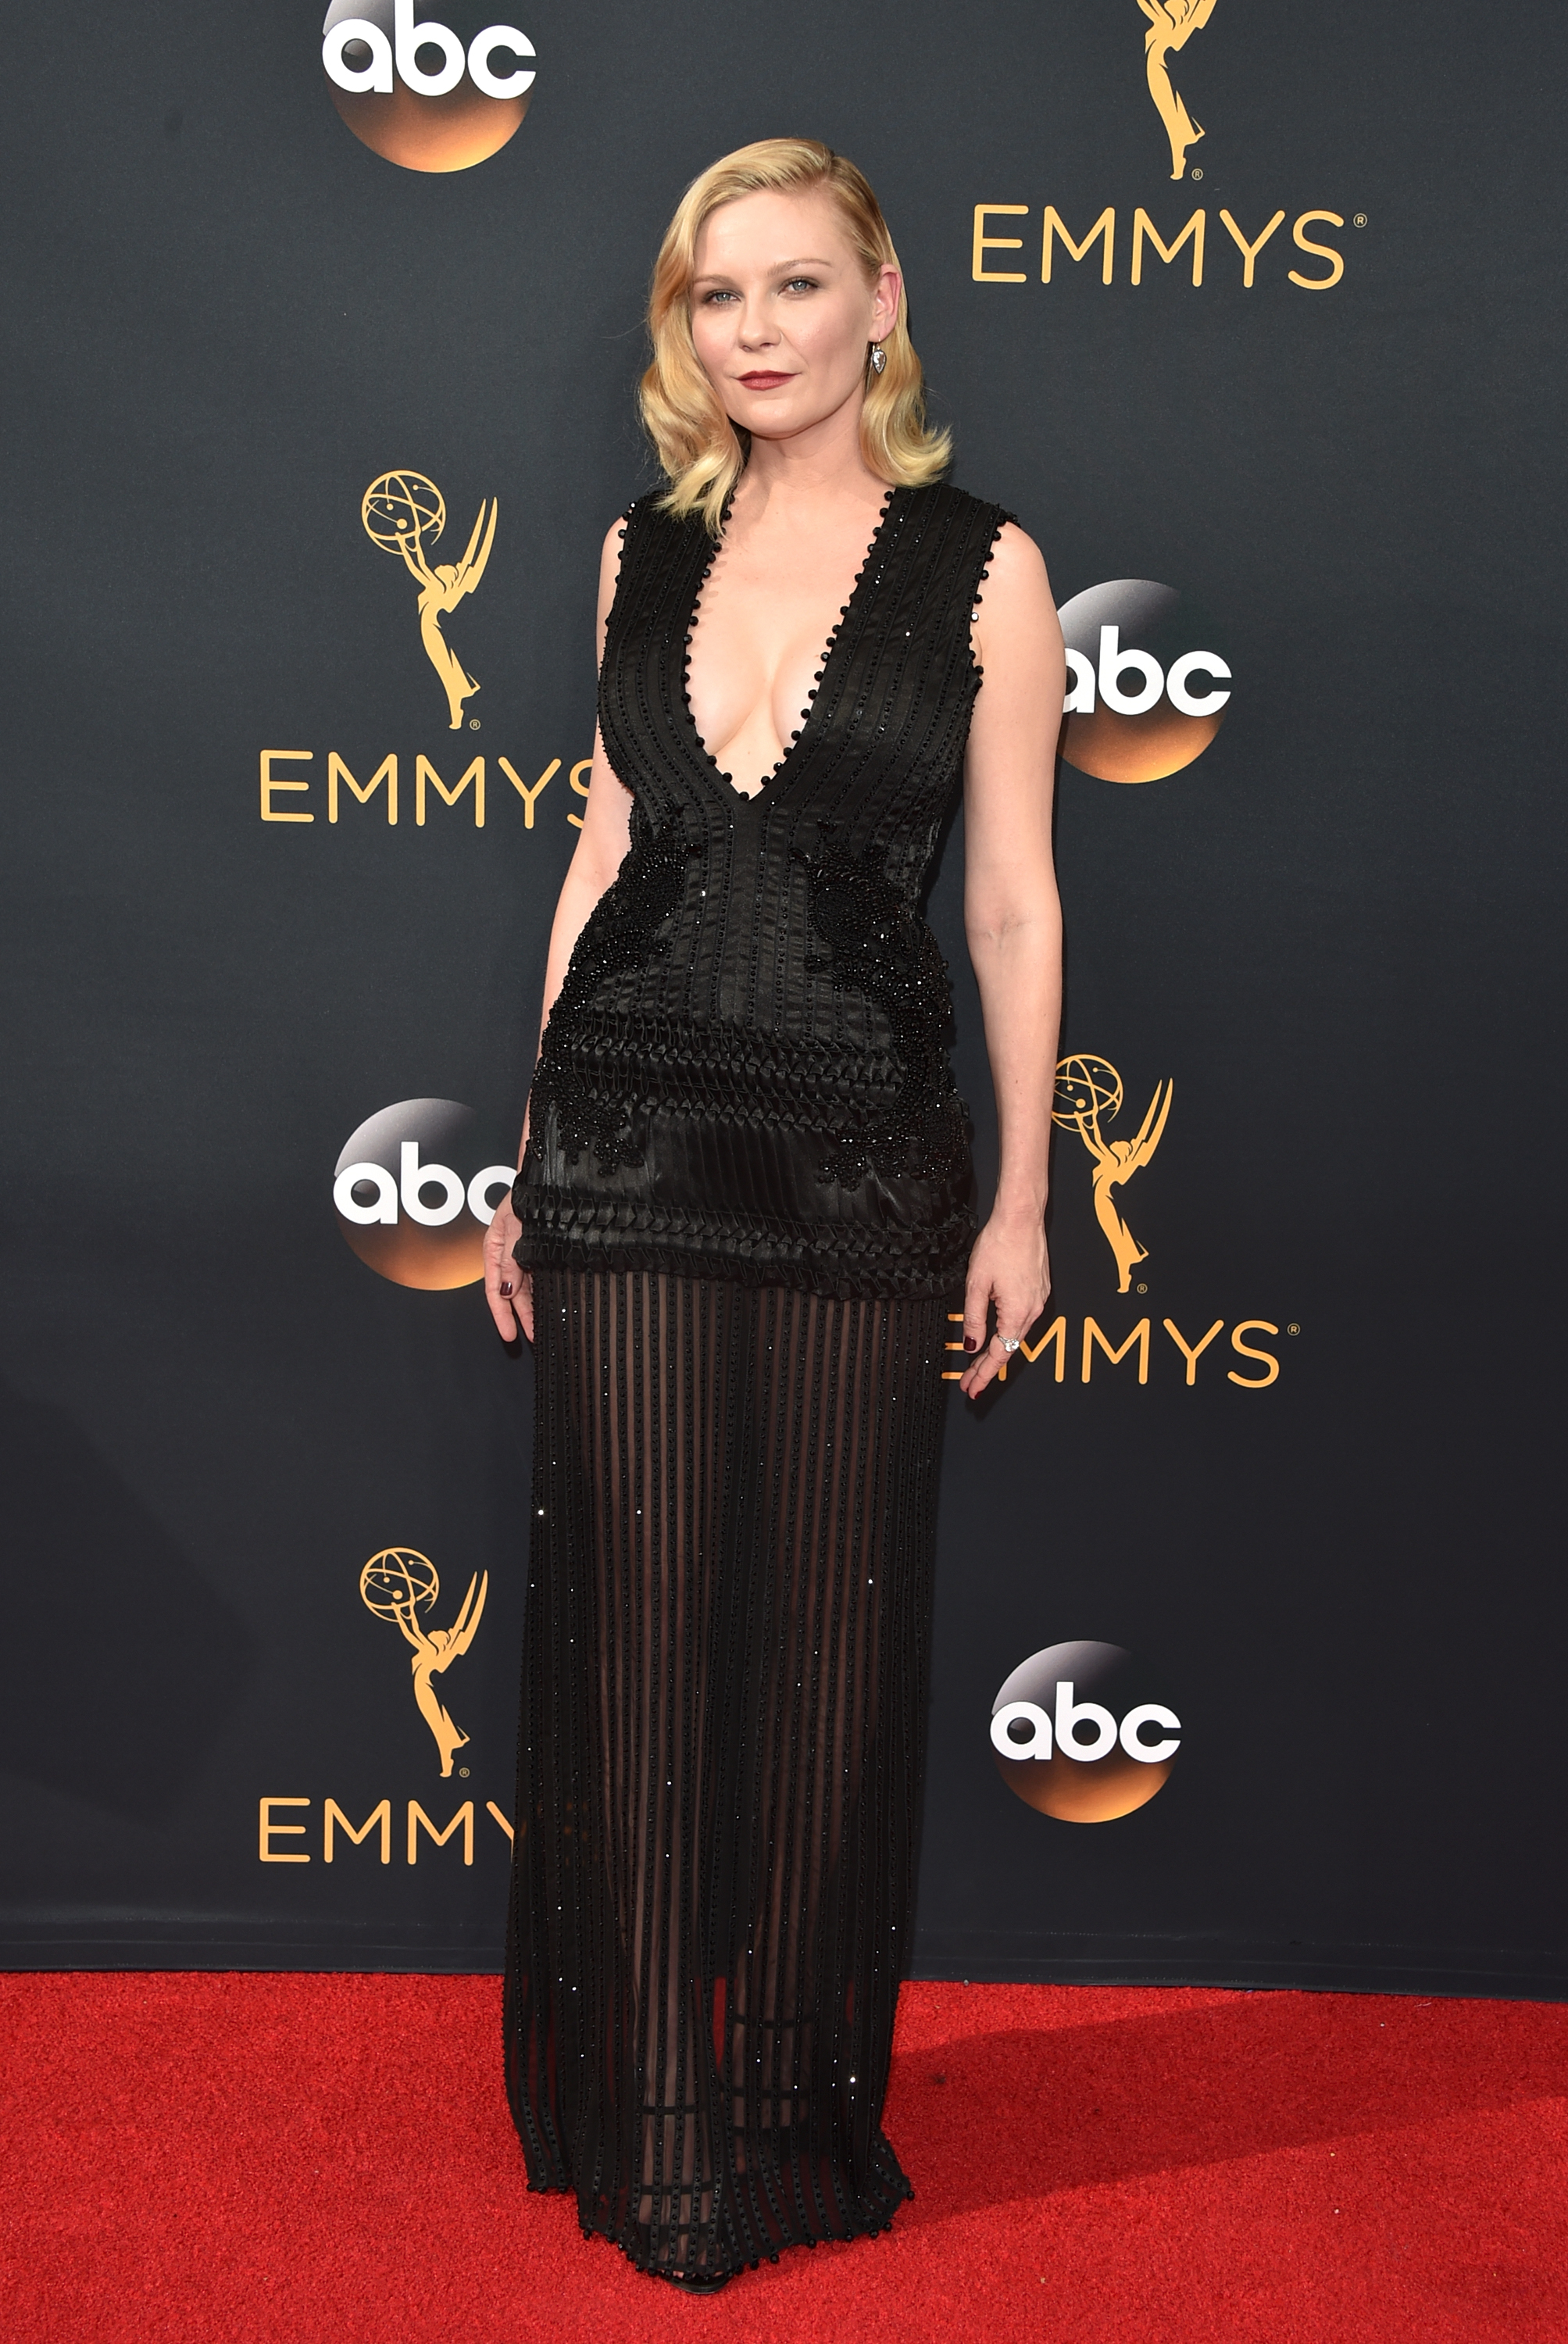 Kirsten Dunst arrives at the 68th Annual Primetime Emmy Awards at Microsoft Theater on Sept. 18, 2016 in Los Angeles.